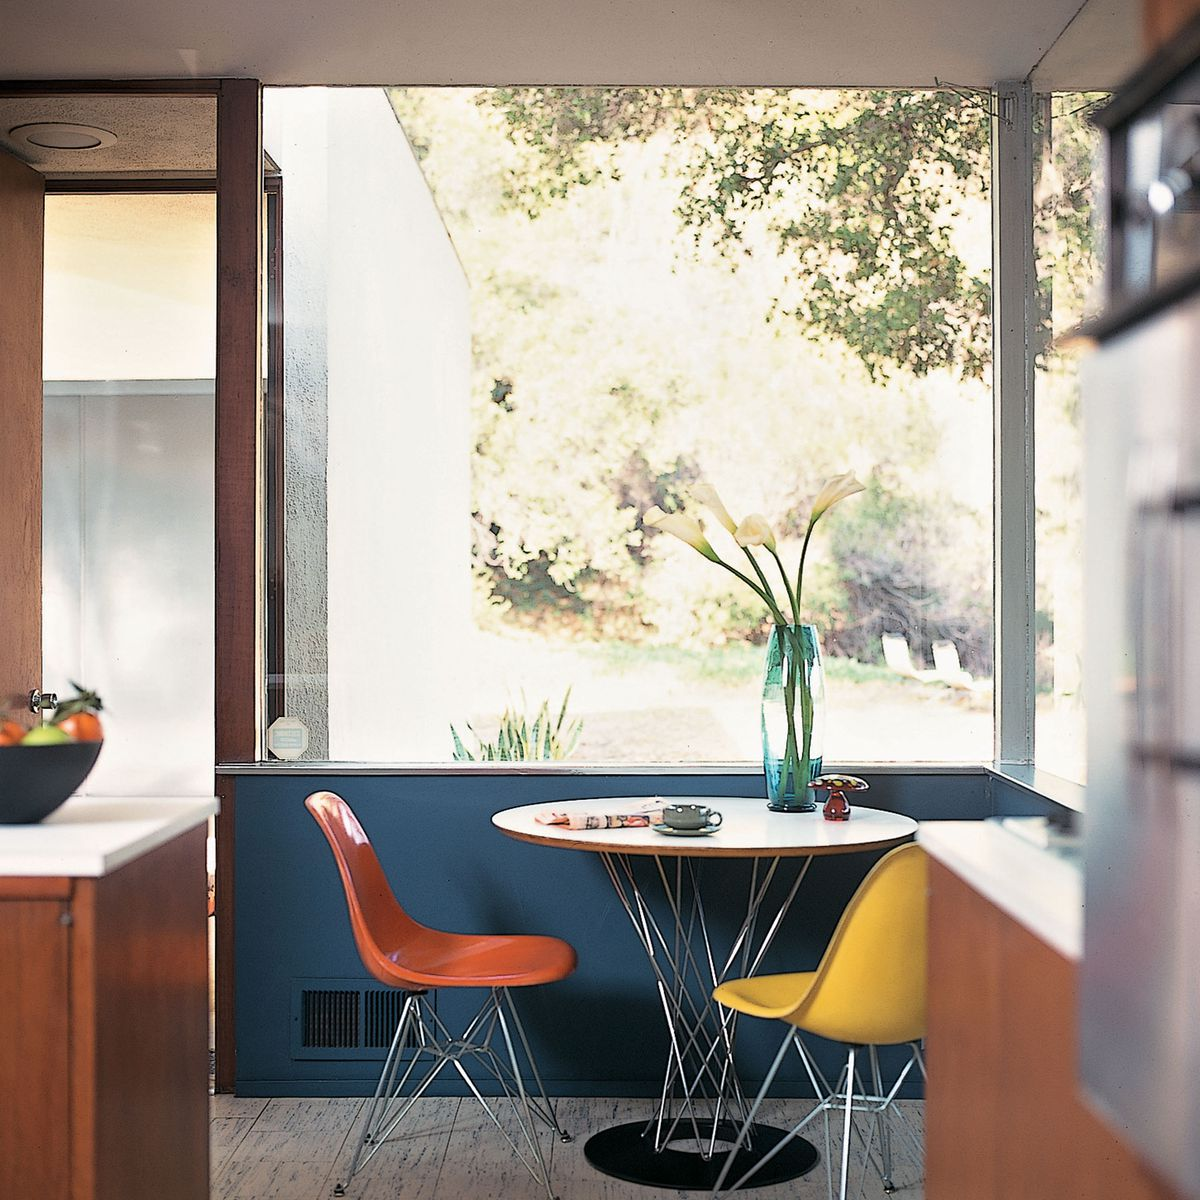 A circular table and two colorful chairs adjacent to two large window panes.